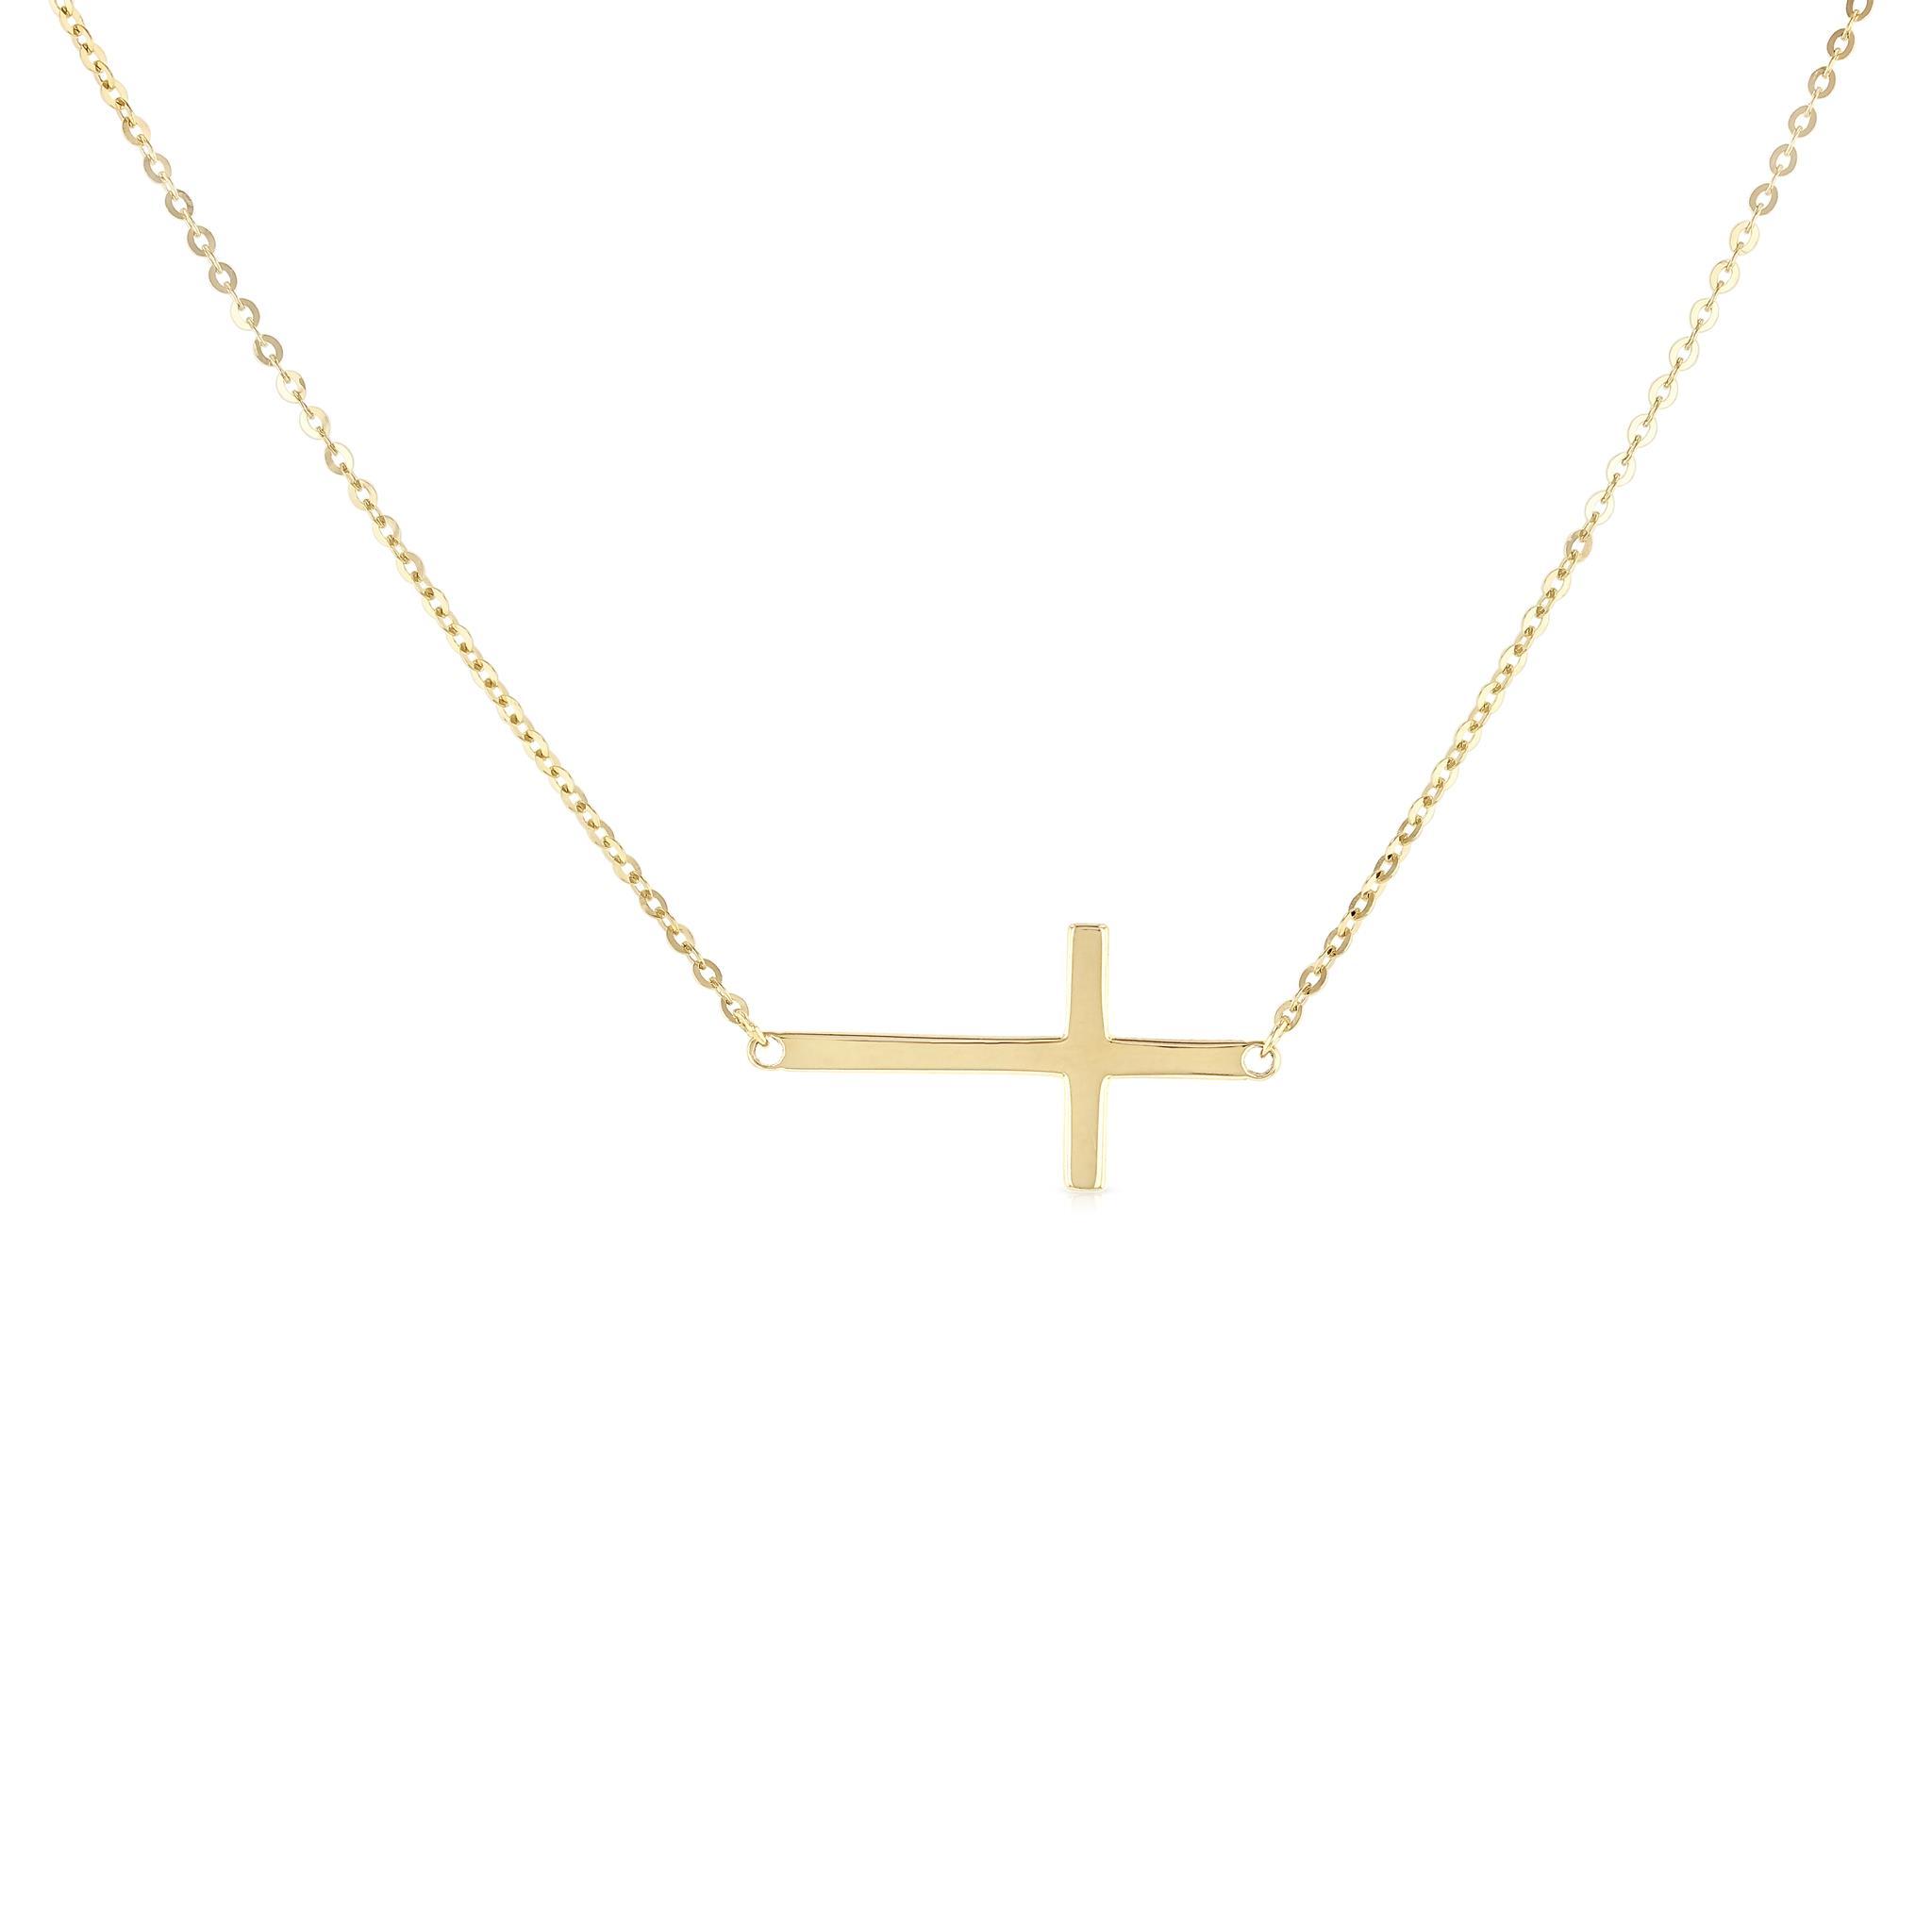 14K Two Tone Gold Cross Charm Pendant with 1.1mm Wheat Chain Necklace